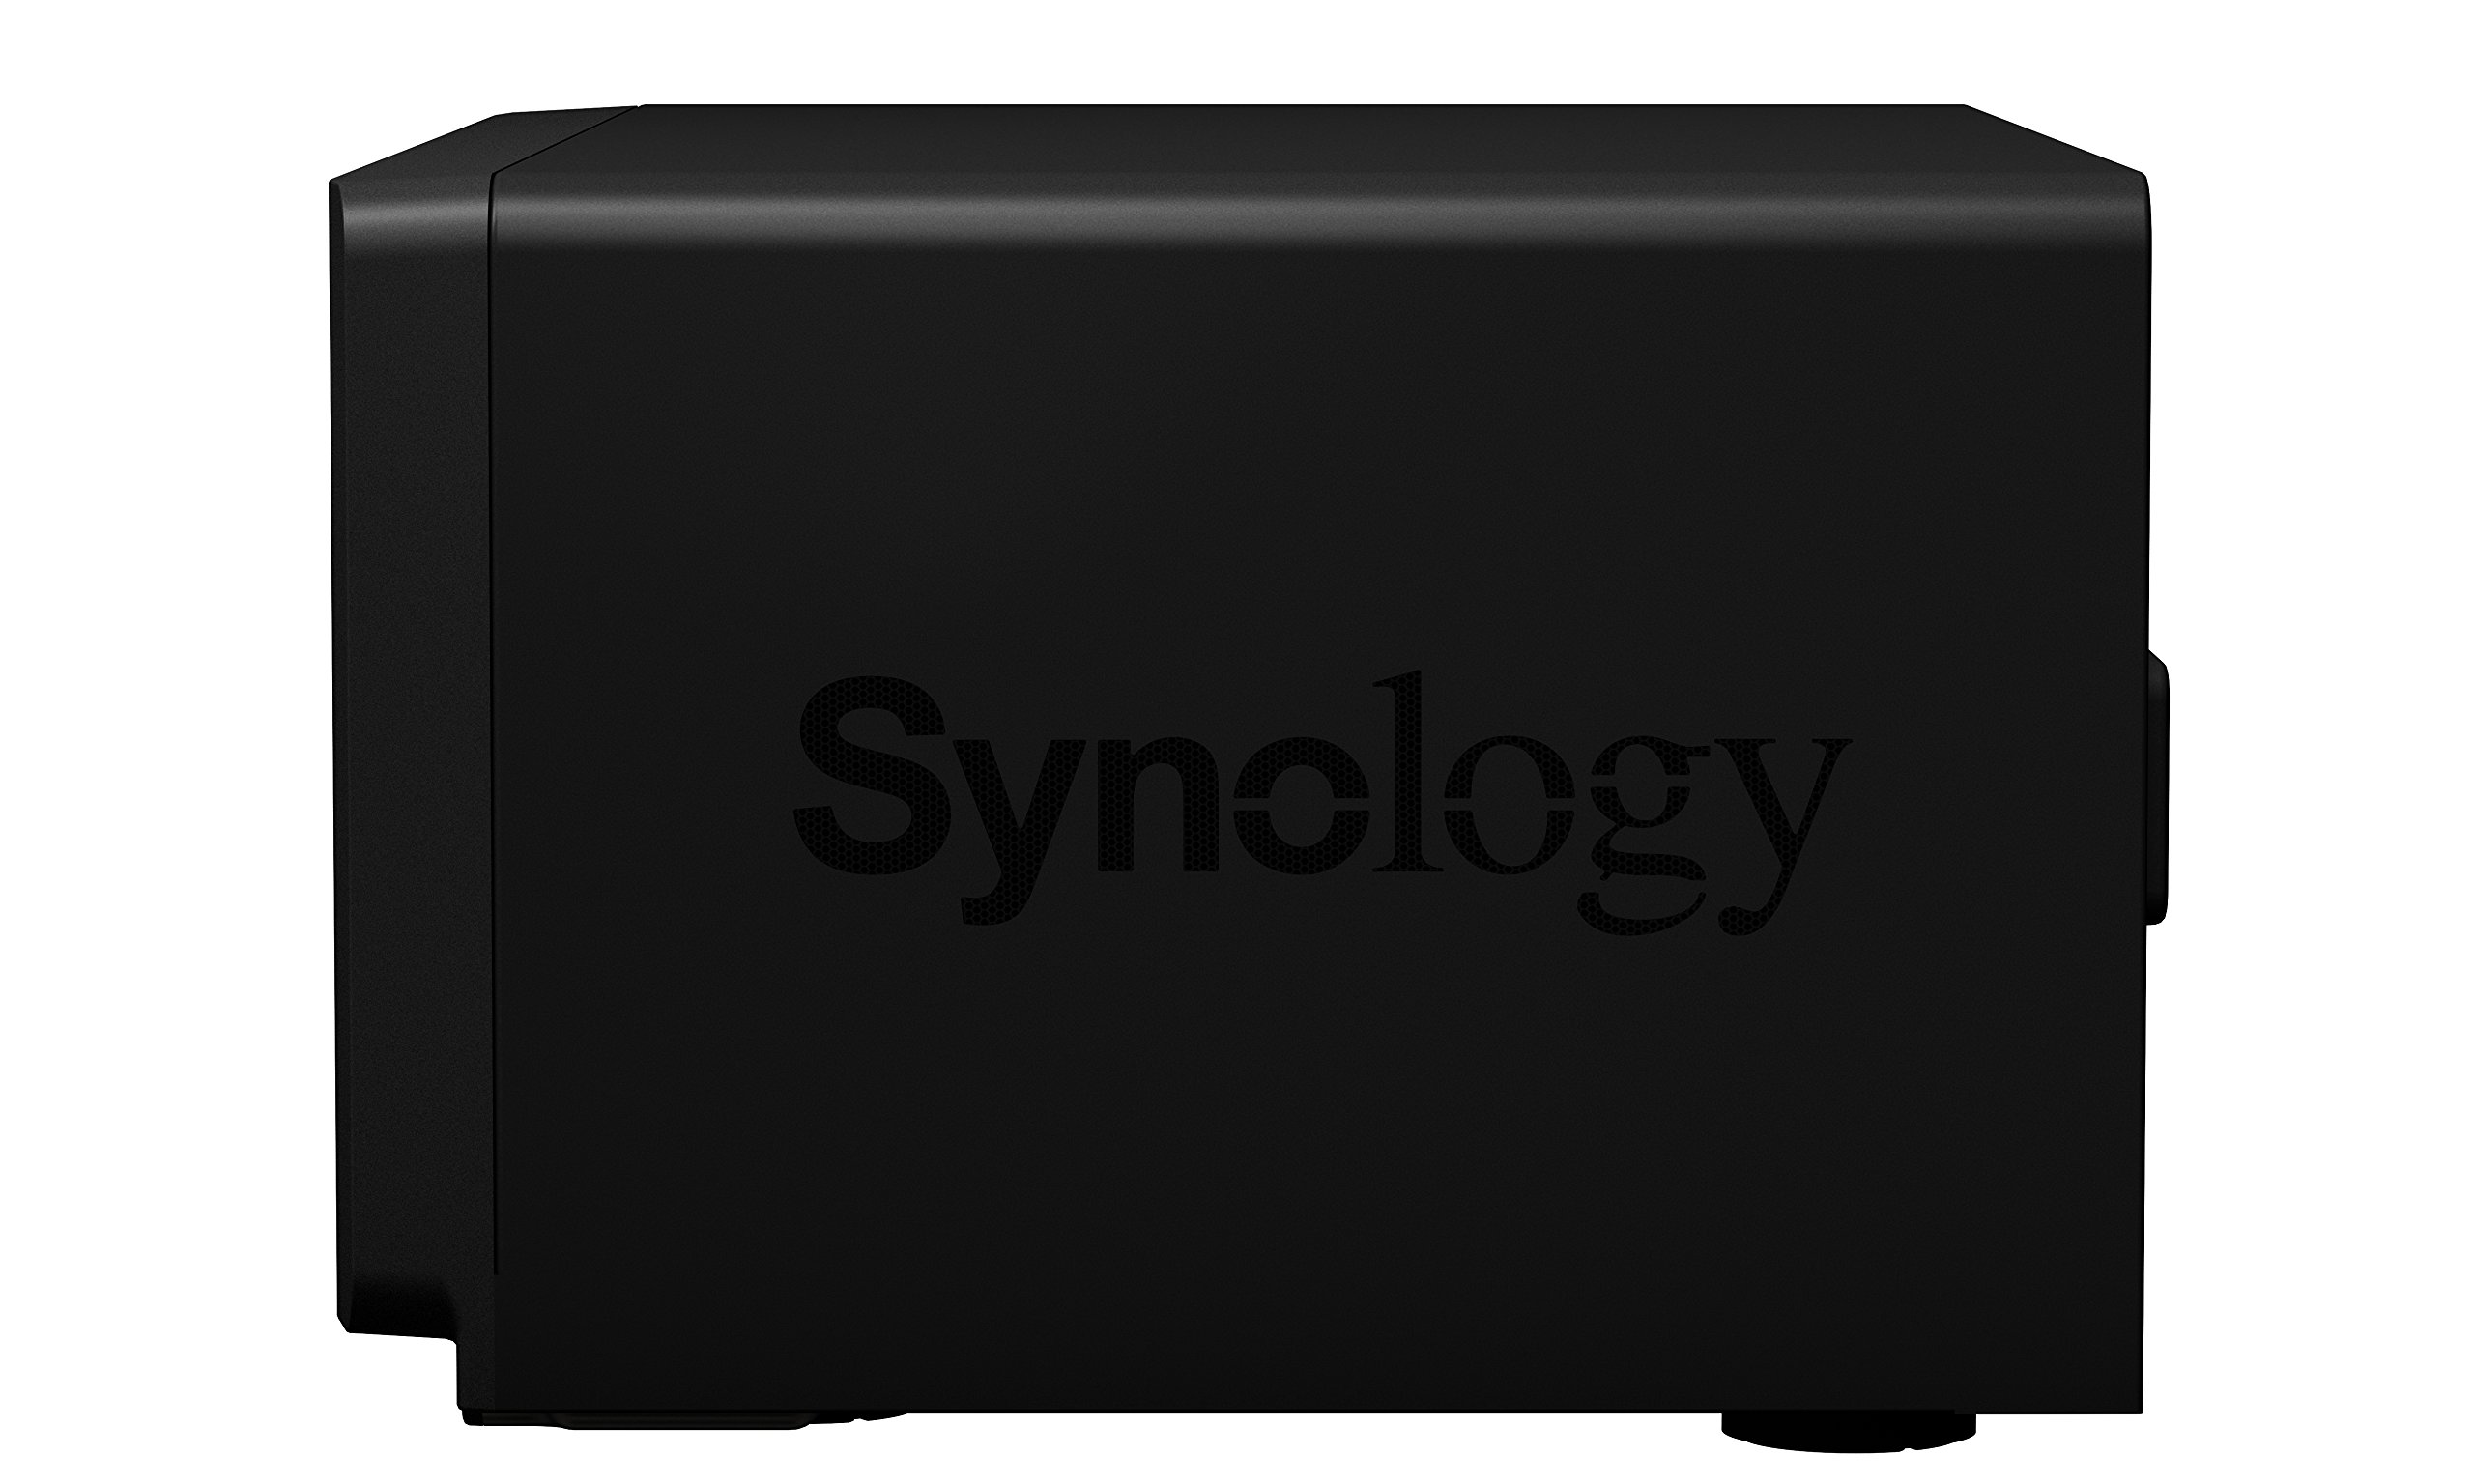 Synology 8 Bay NAS Diskstation (Diskless) (DS1819+) by Synology (Image #6)